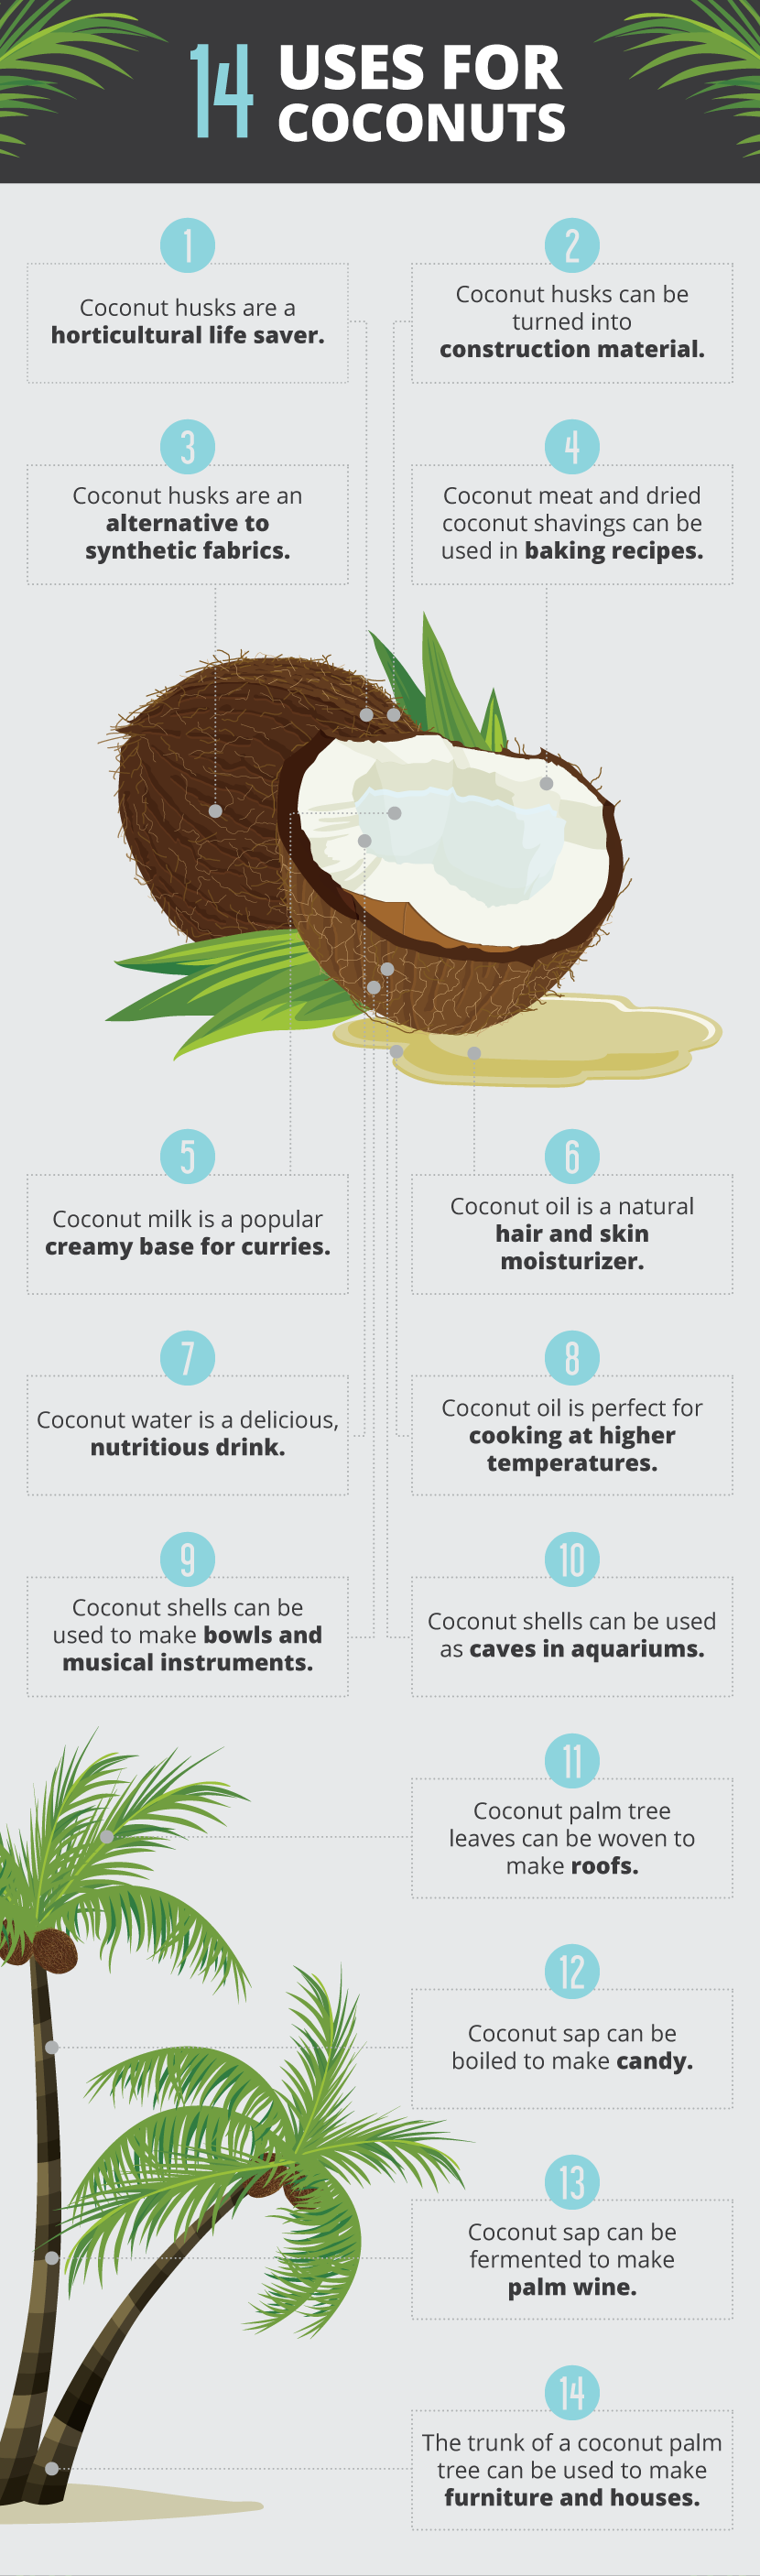 Uses For Coconuts - Unique Ways to Incorporate Coconuts Into Your Life